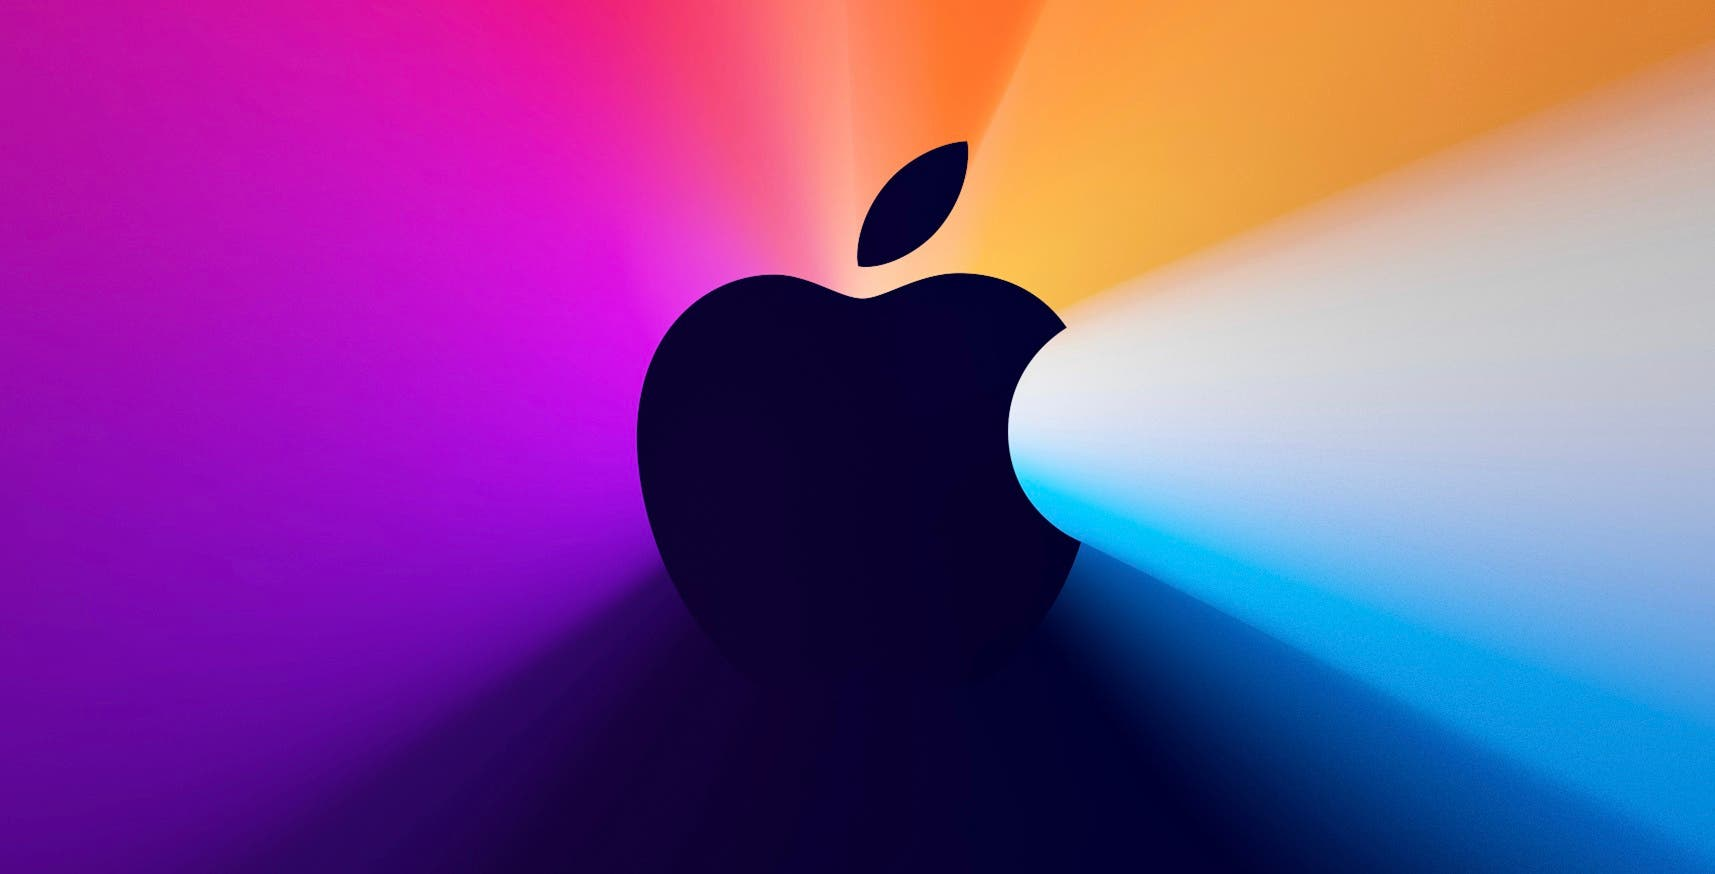 -One-more-thing-Neues-Apple-Event-am-10-November-2020